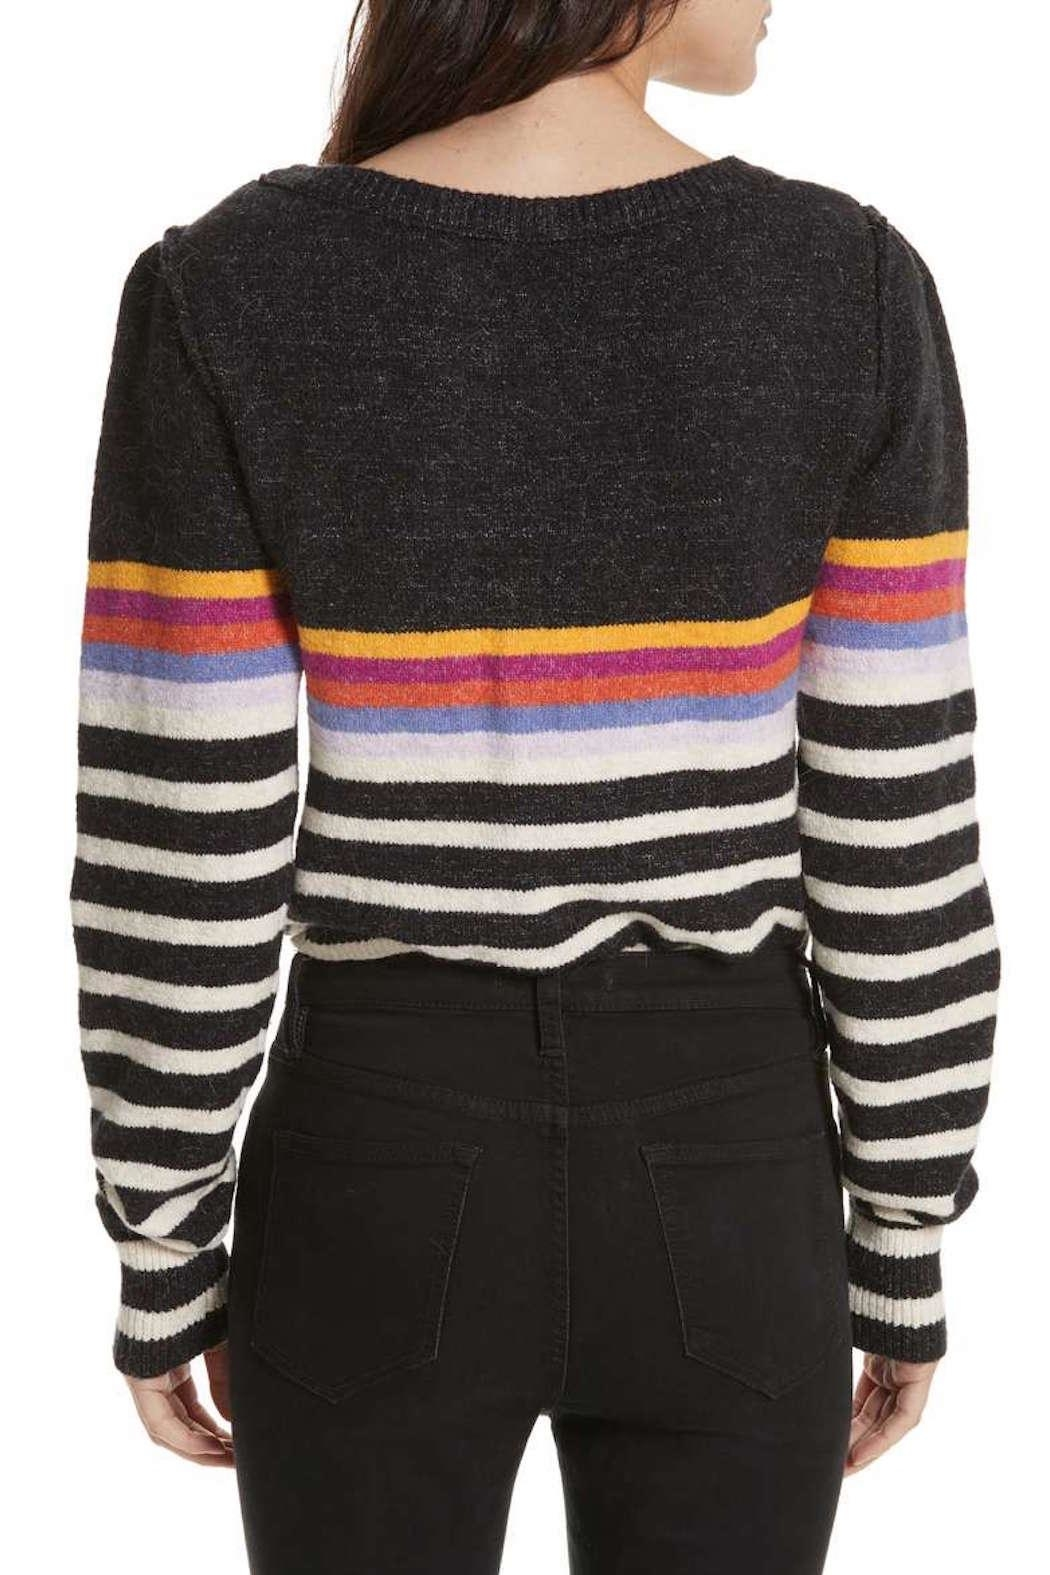 Free People Complete Me Sweater - Side Cropped Image